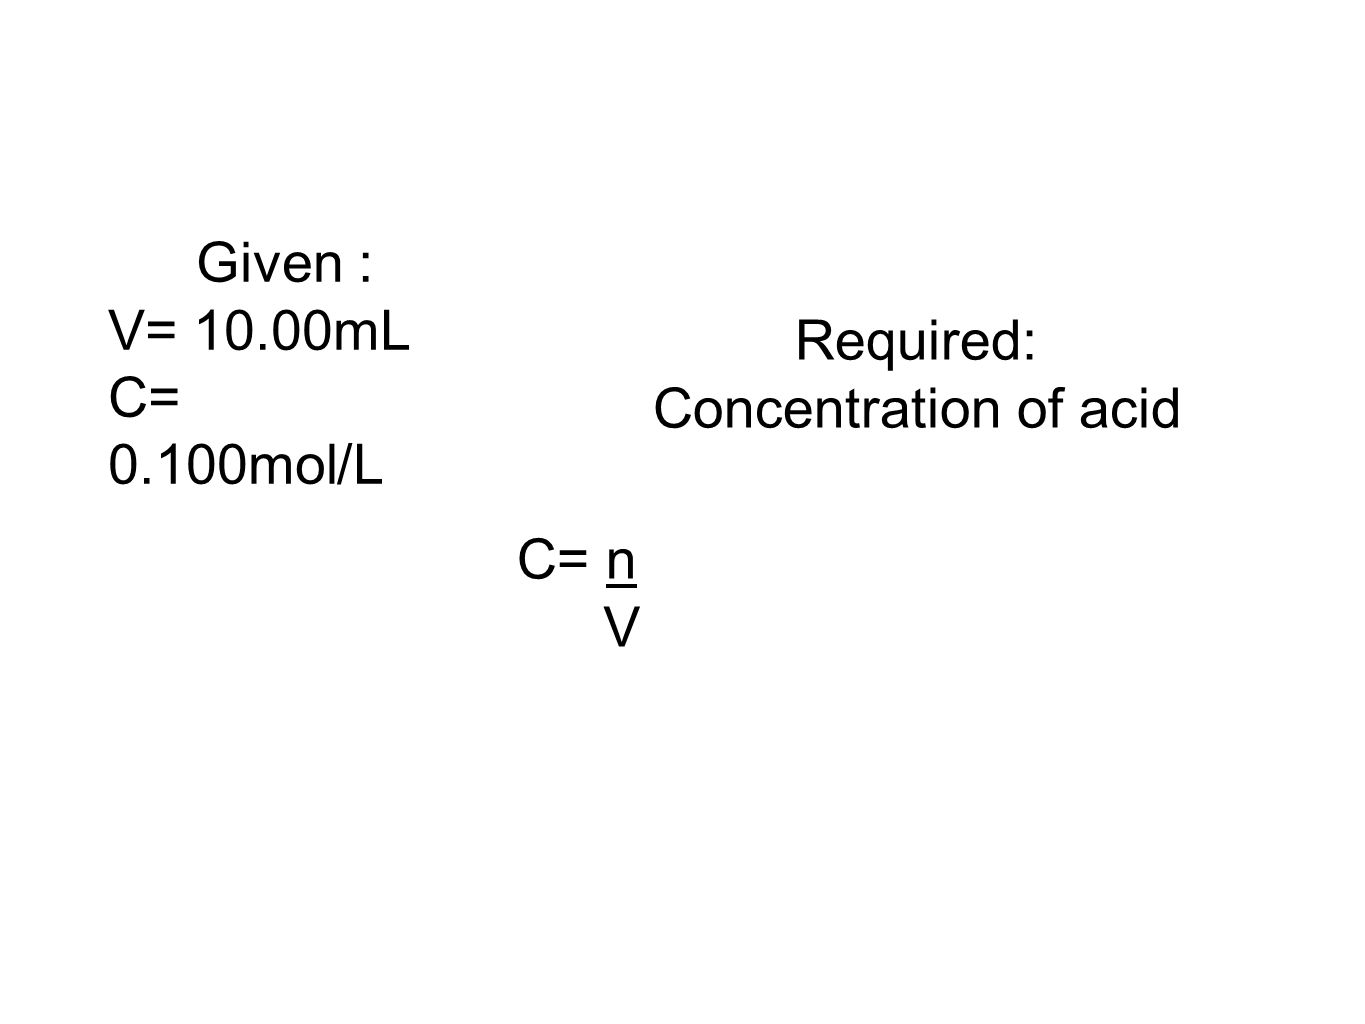 Given : V= 10.00mL C= 0.100mol/L Required: Concentration of acid C= n V